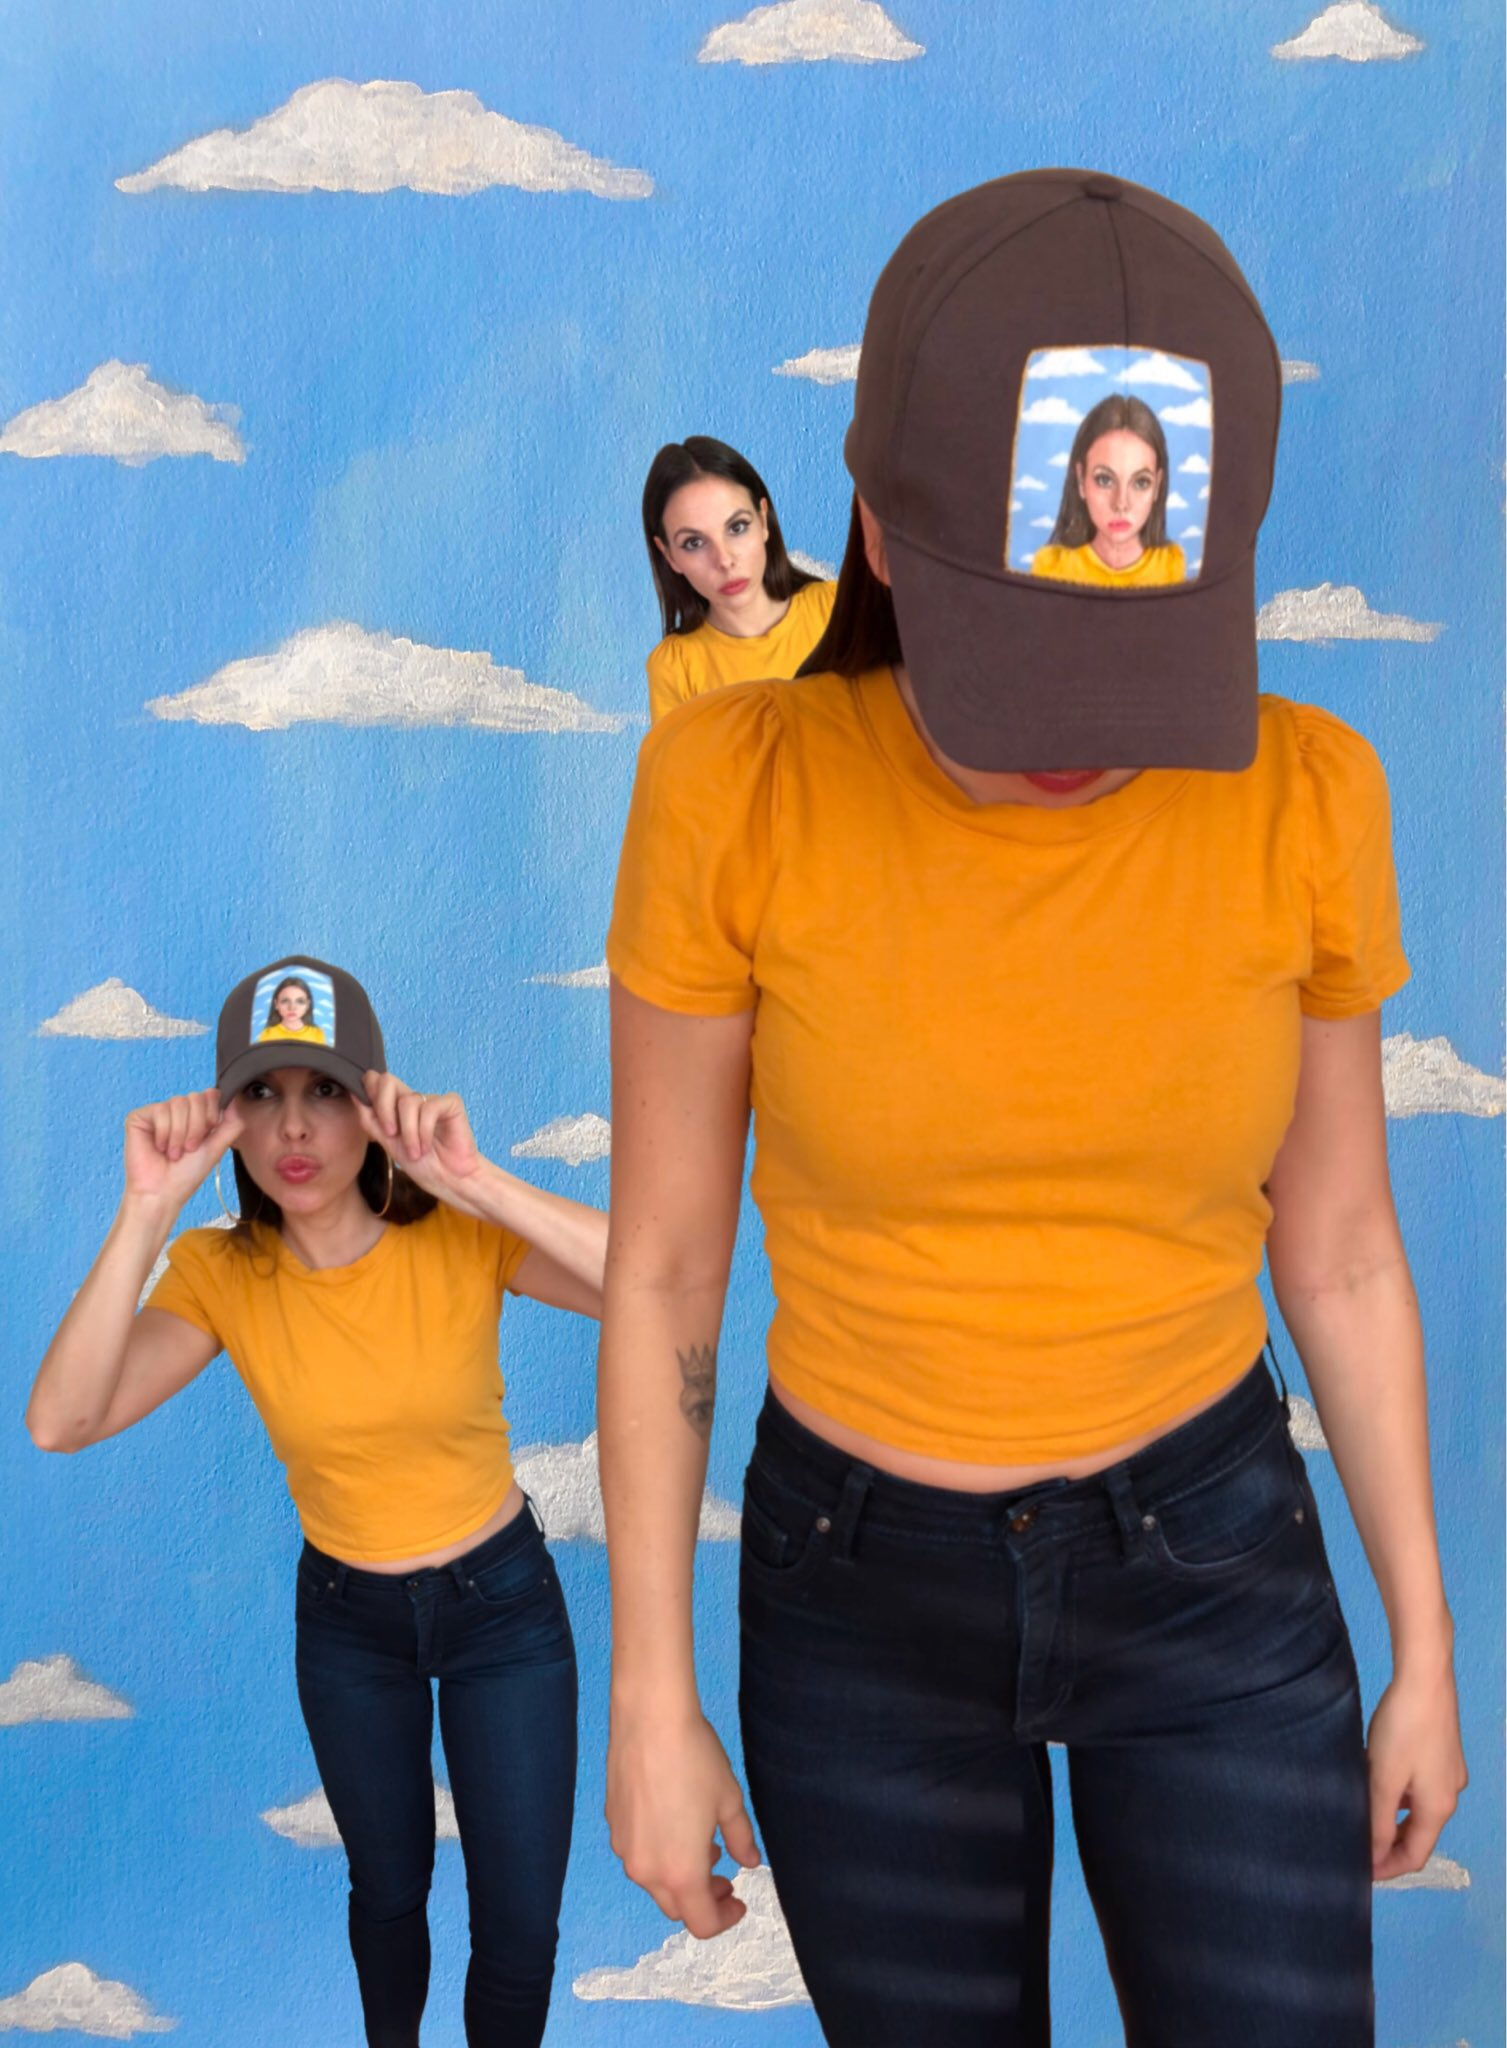 Me on a Hat and the Hat is on Me (2018)